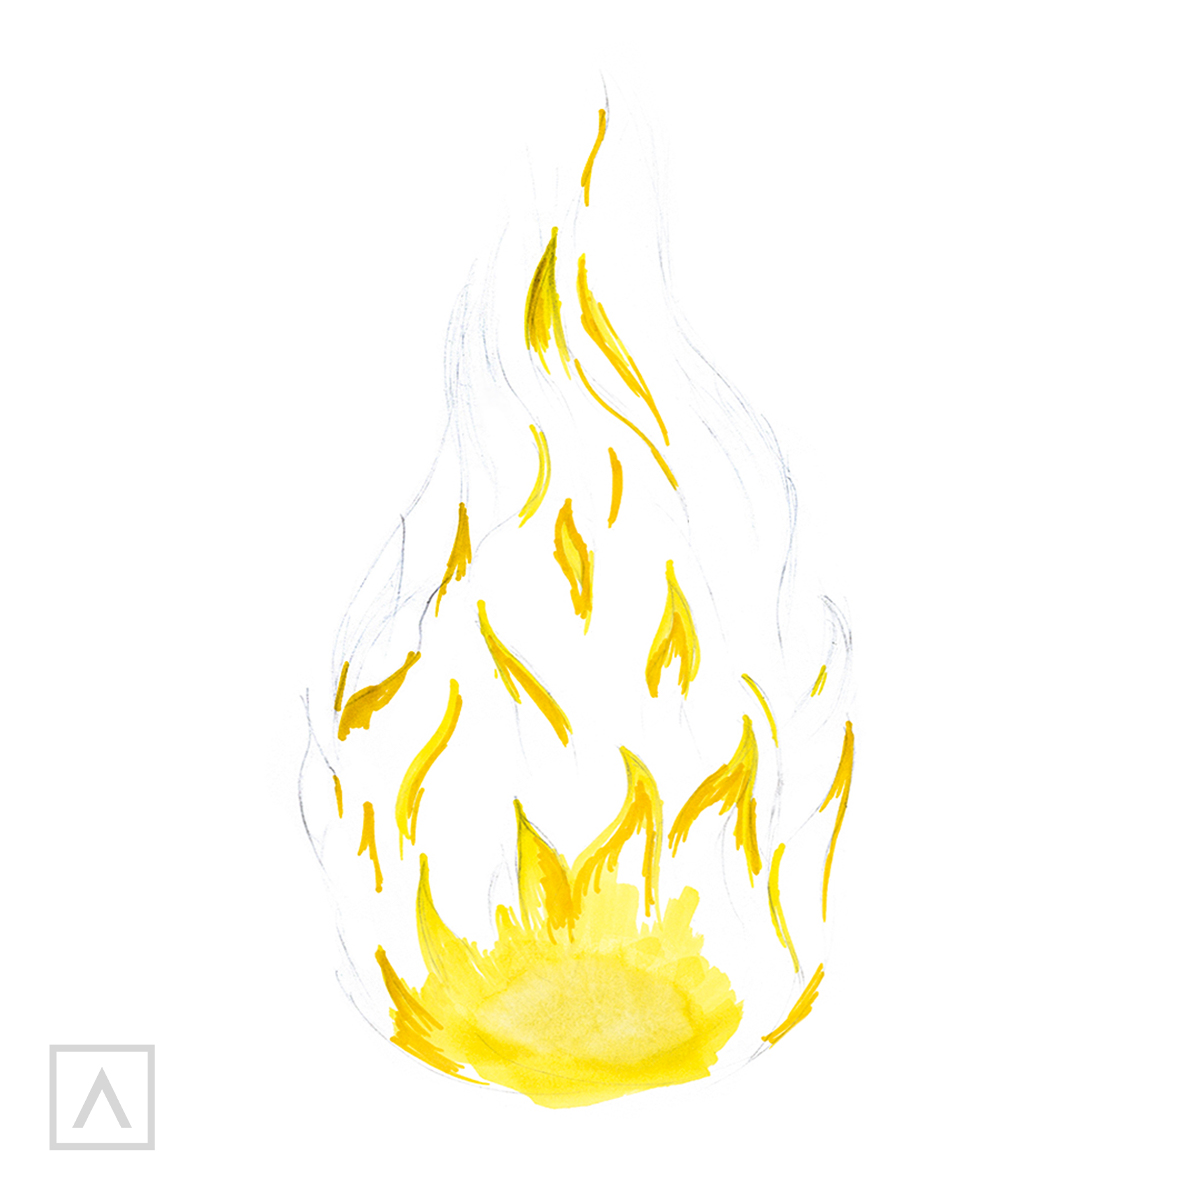 How to draw flames - Step 4